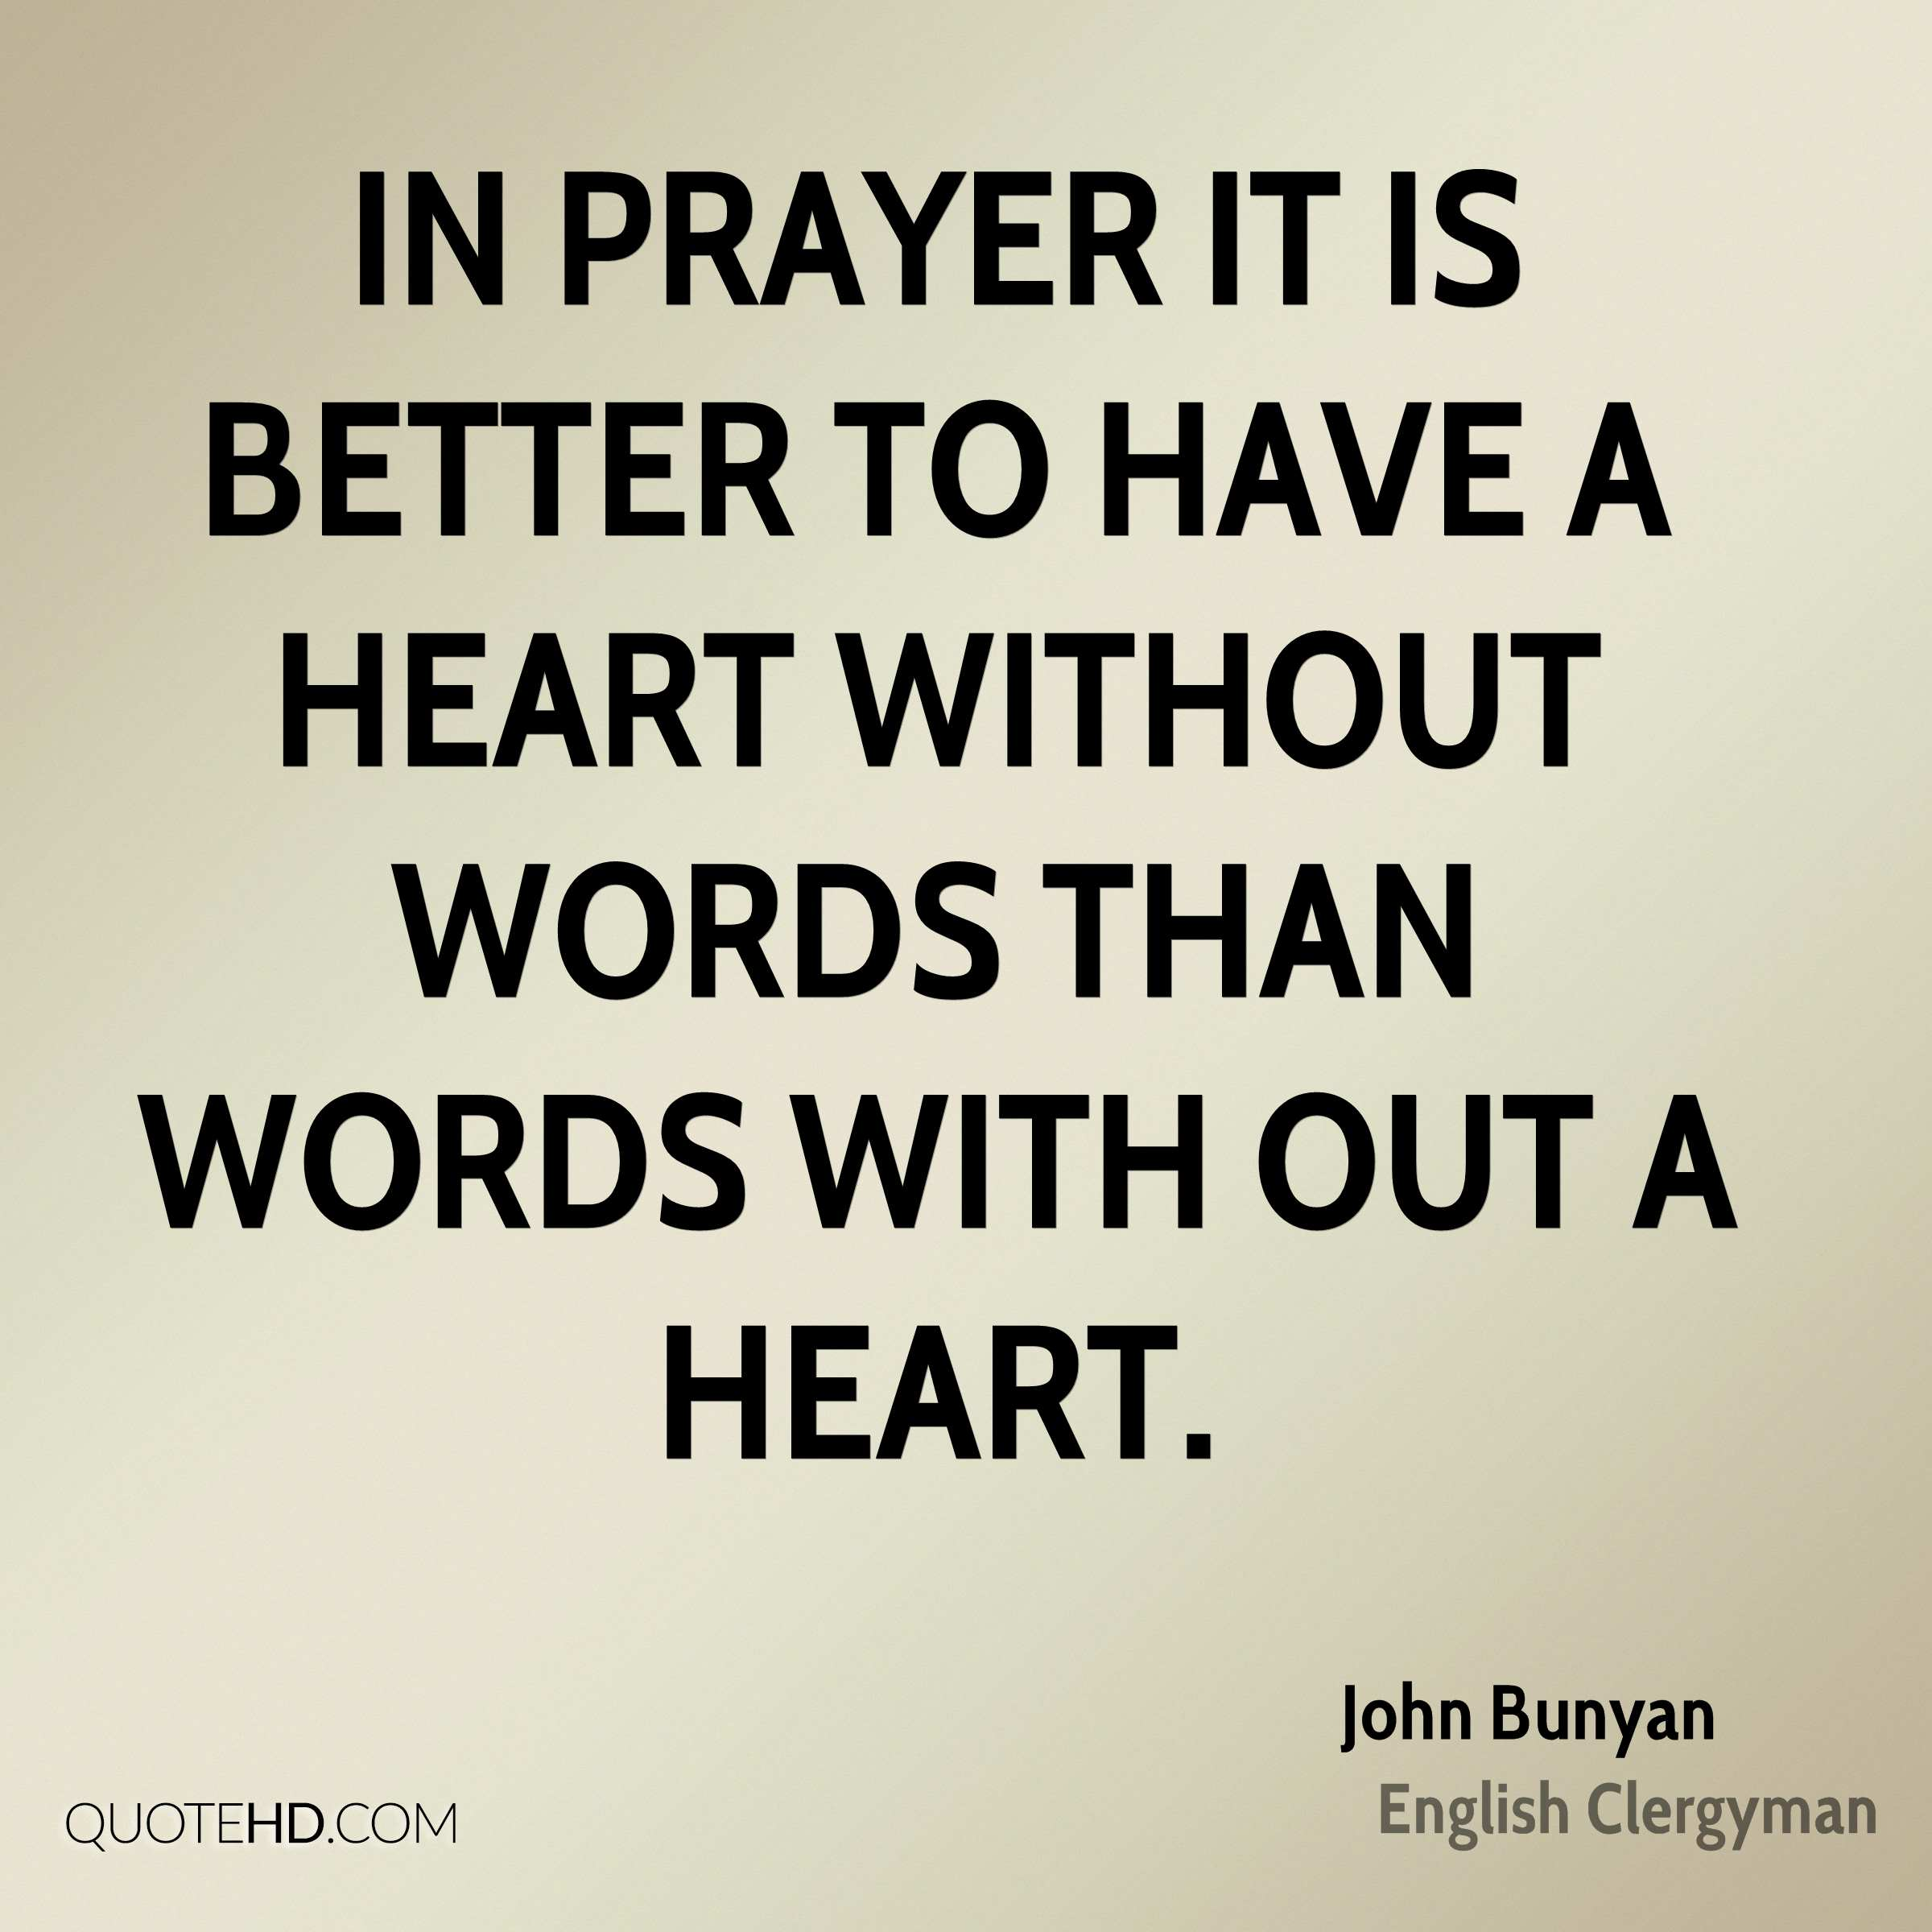 In prayer it is better to have a heart without words than words with out a heart.